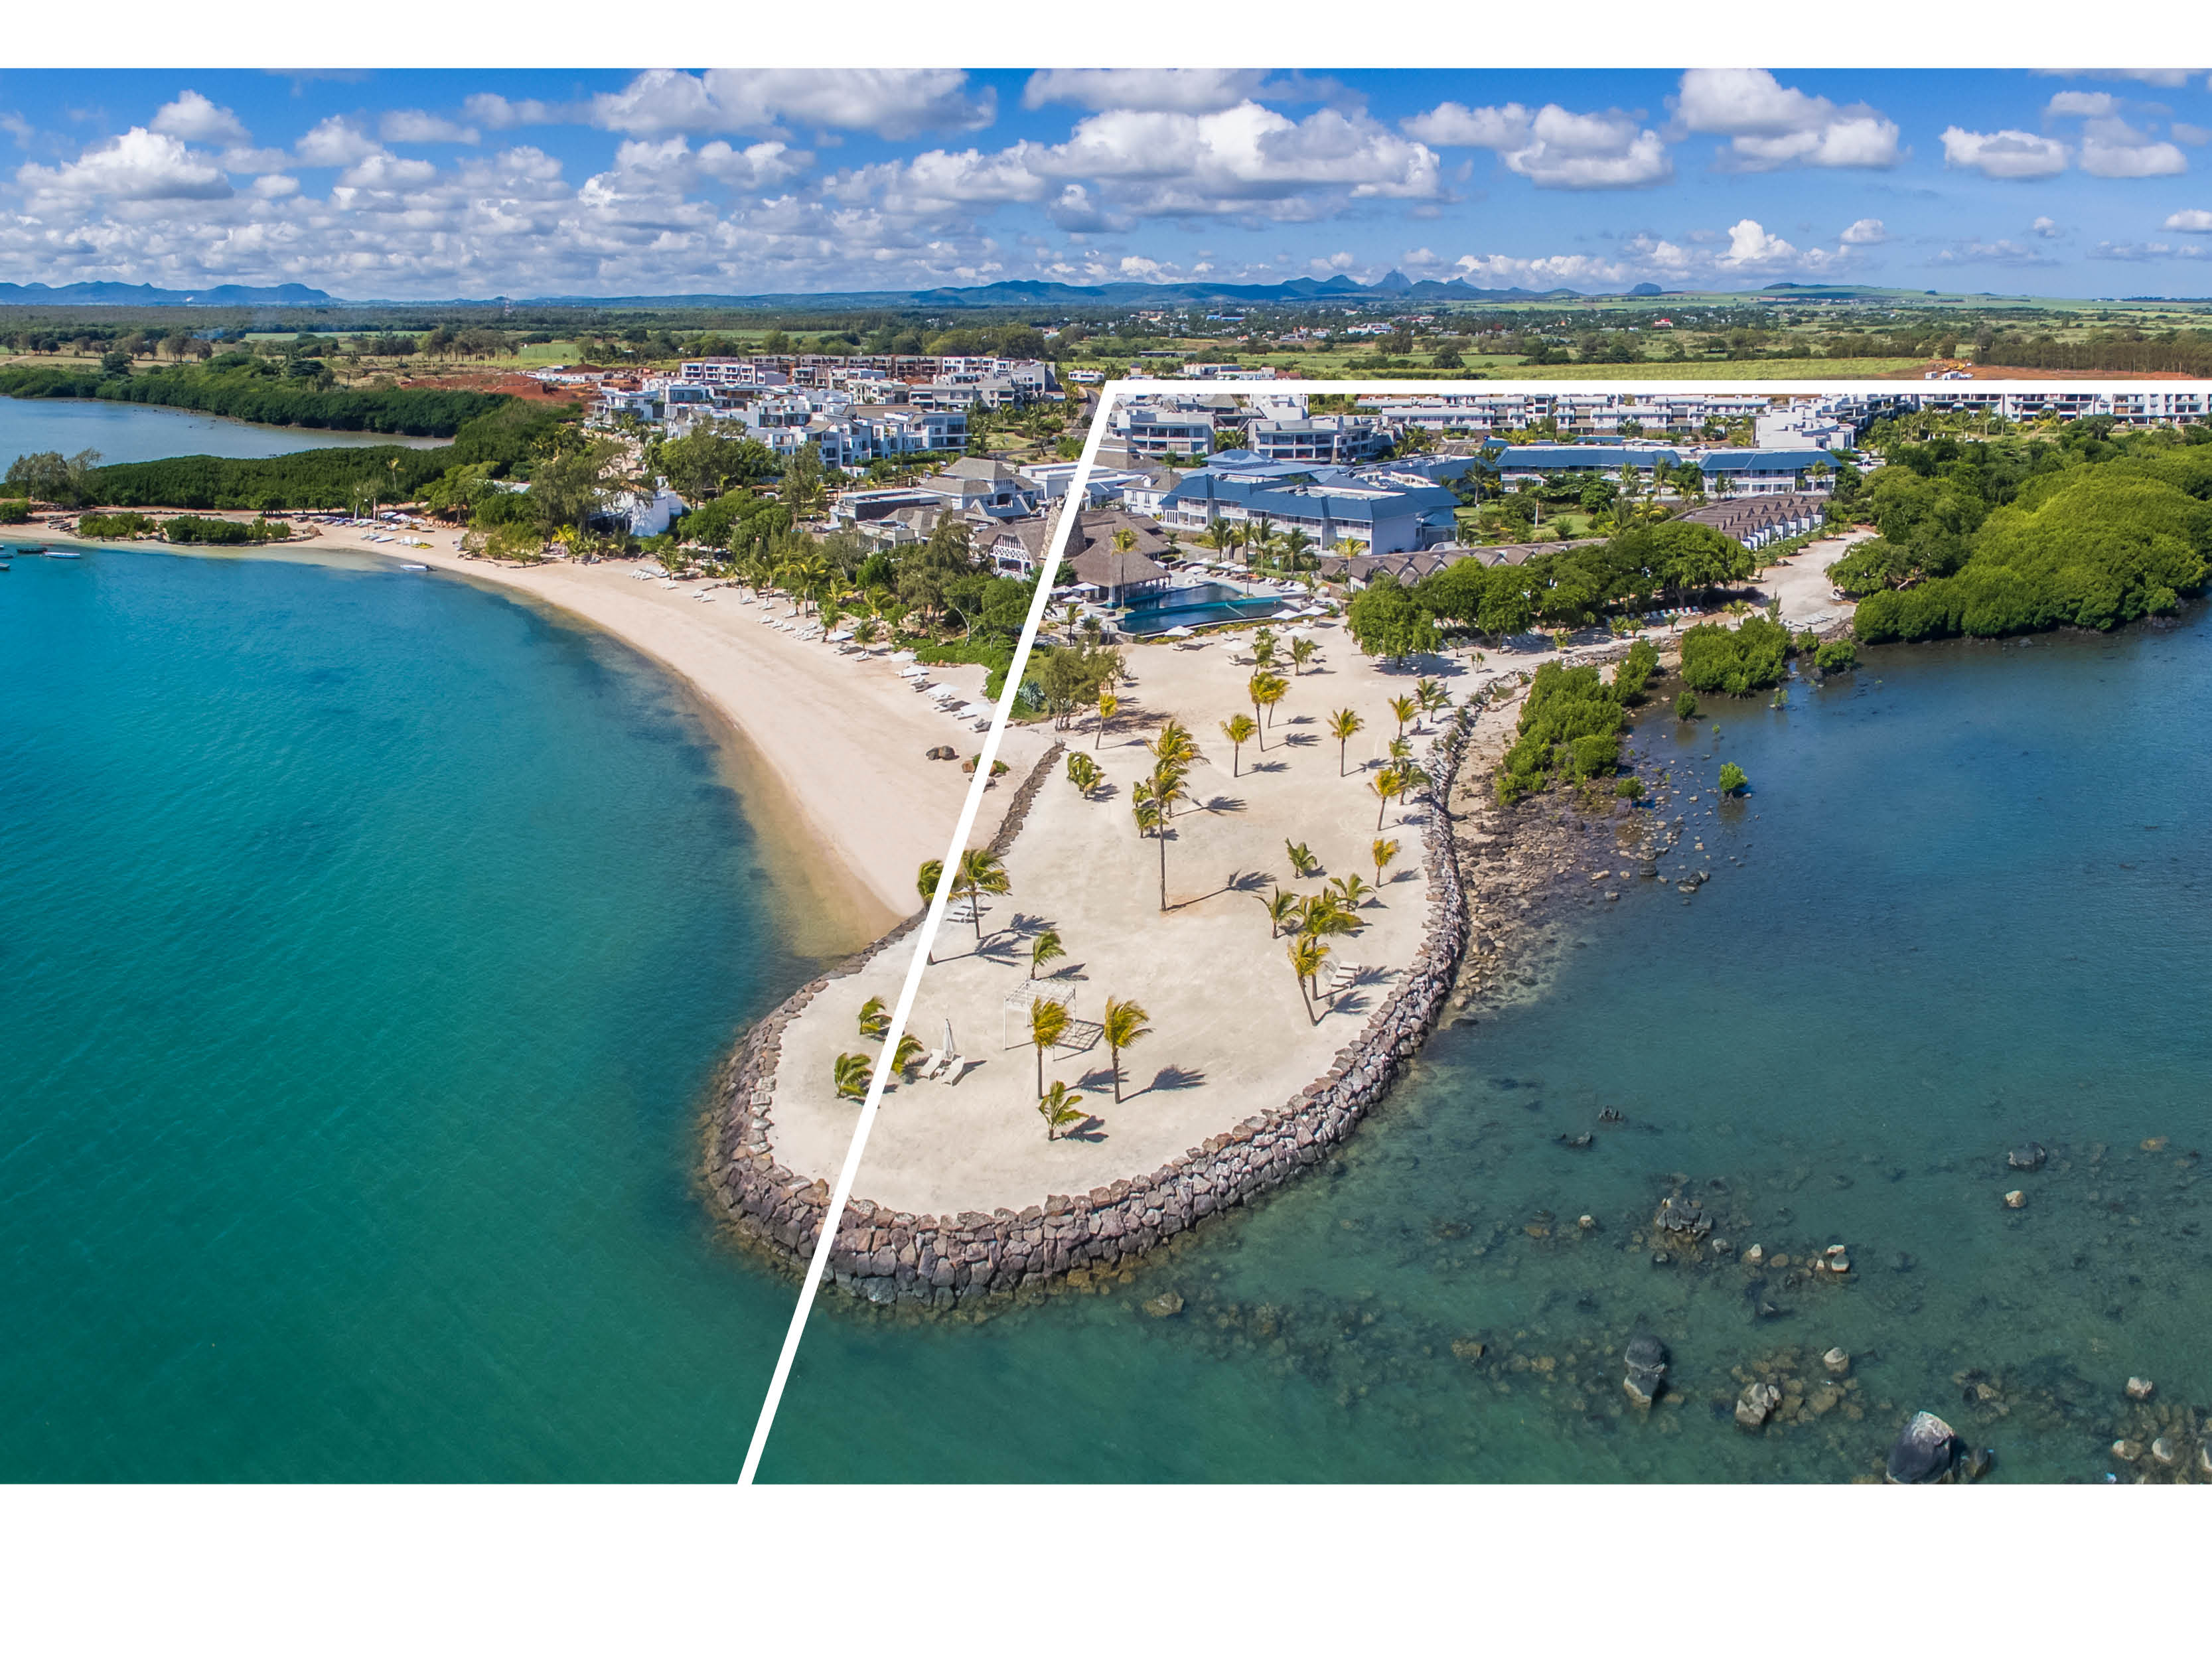 Mauritius: A high-end property destination on the rise